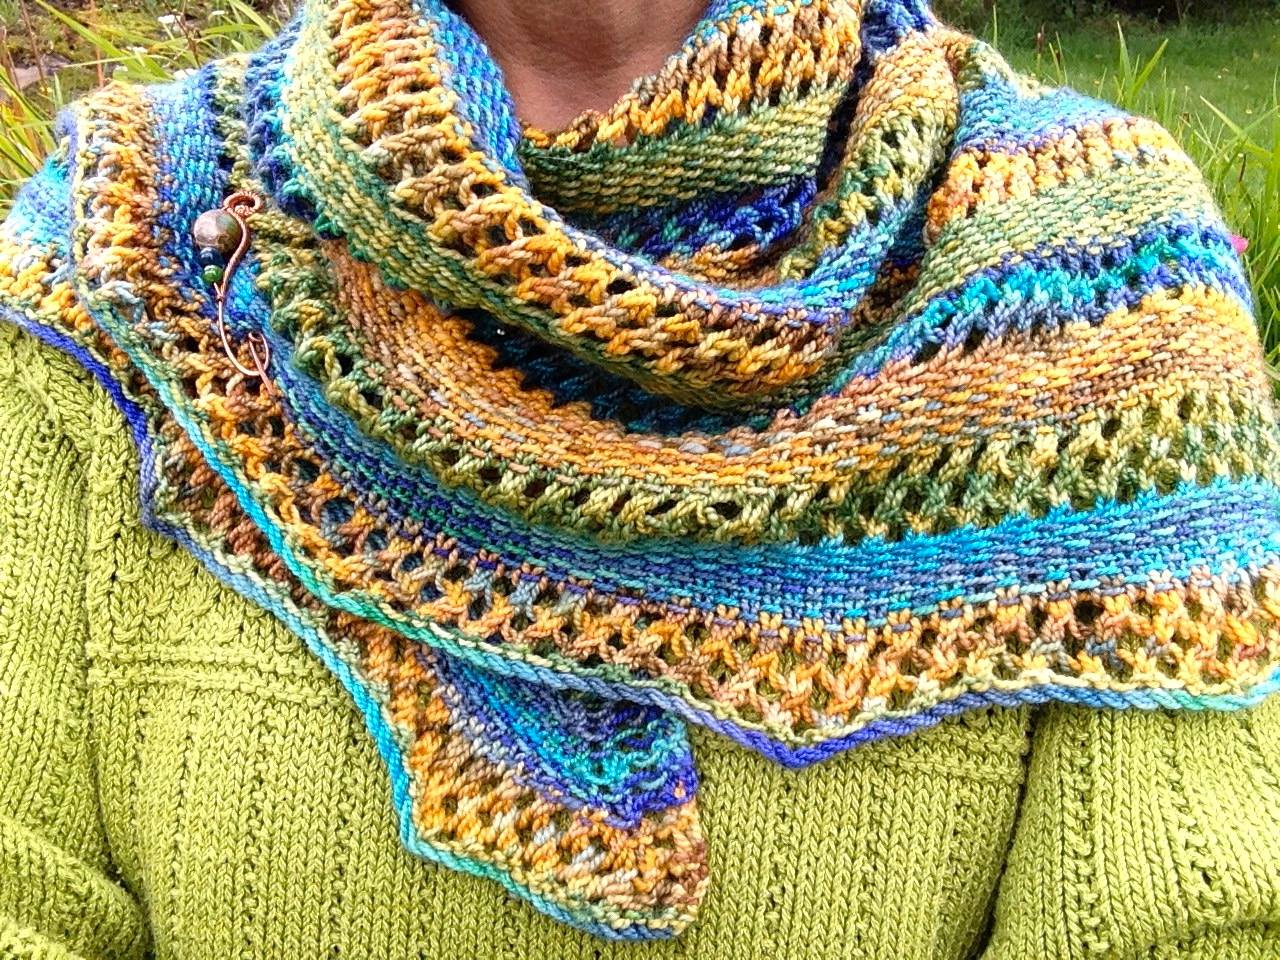 Linen & Lace Shawl   by India Tresselt,   free pattern .  Shawl pin   by   Everyday Peacocks .